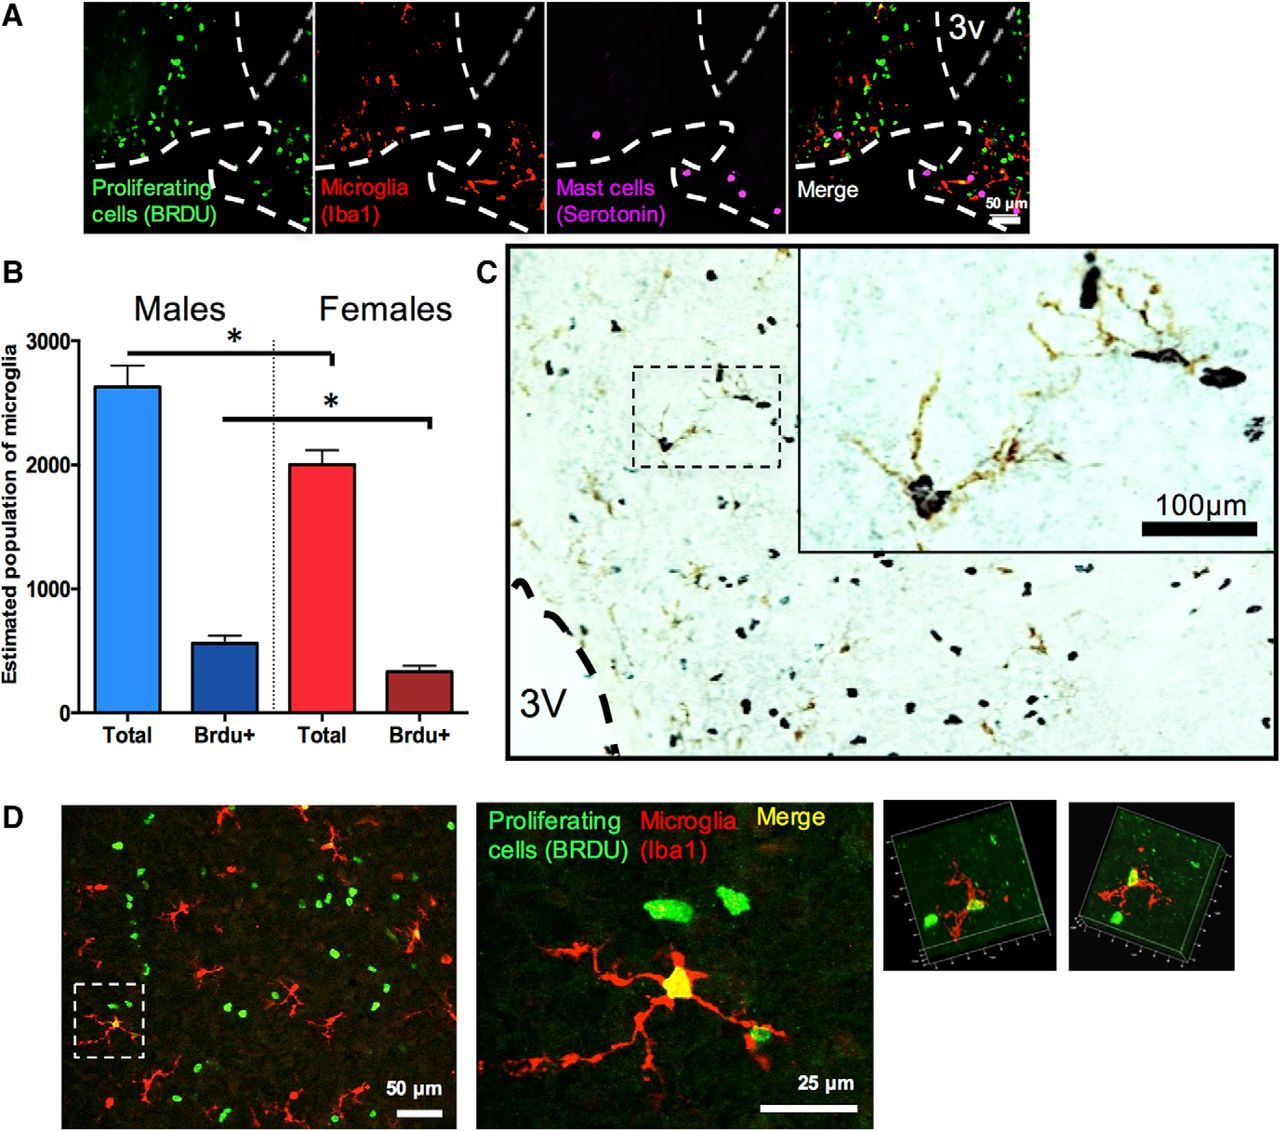 Mast Cells in the Developing Brain Determine Adult Sexual Behavior